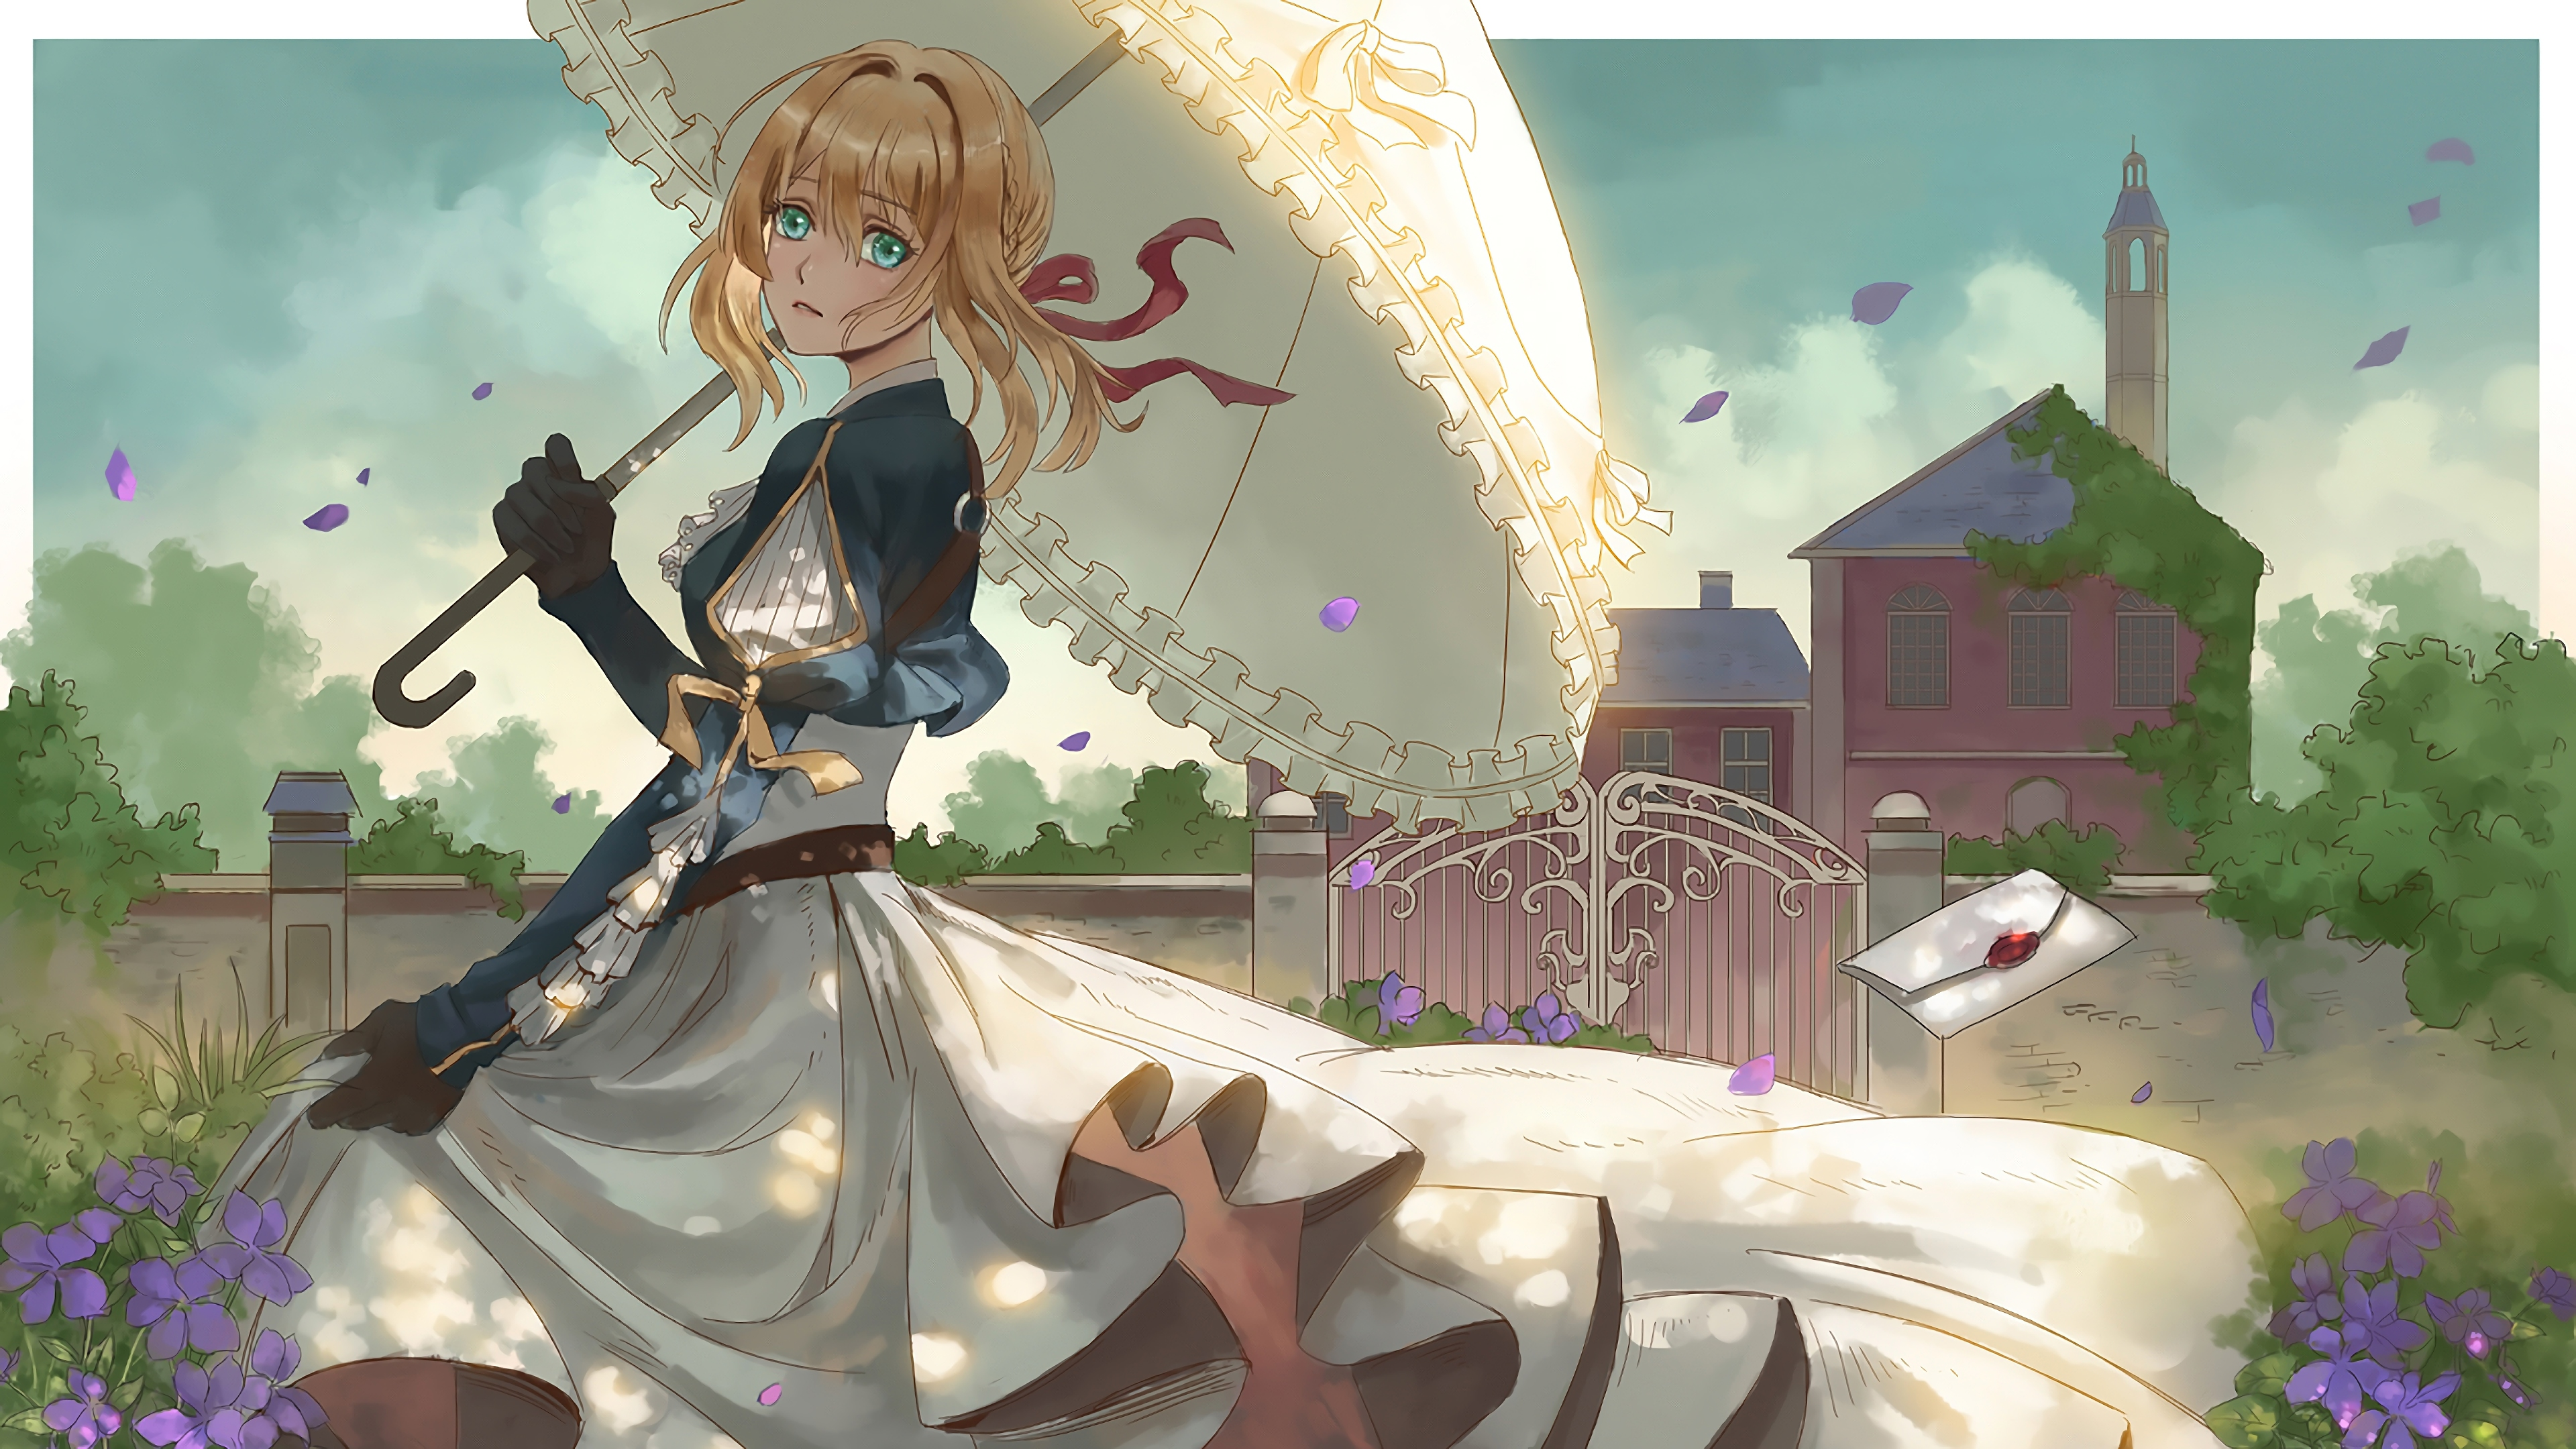 Wallpapers Hd Anime Violet Evergarden 4k 6469